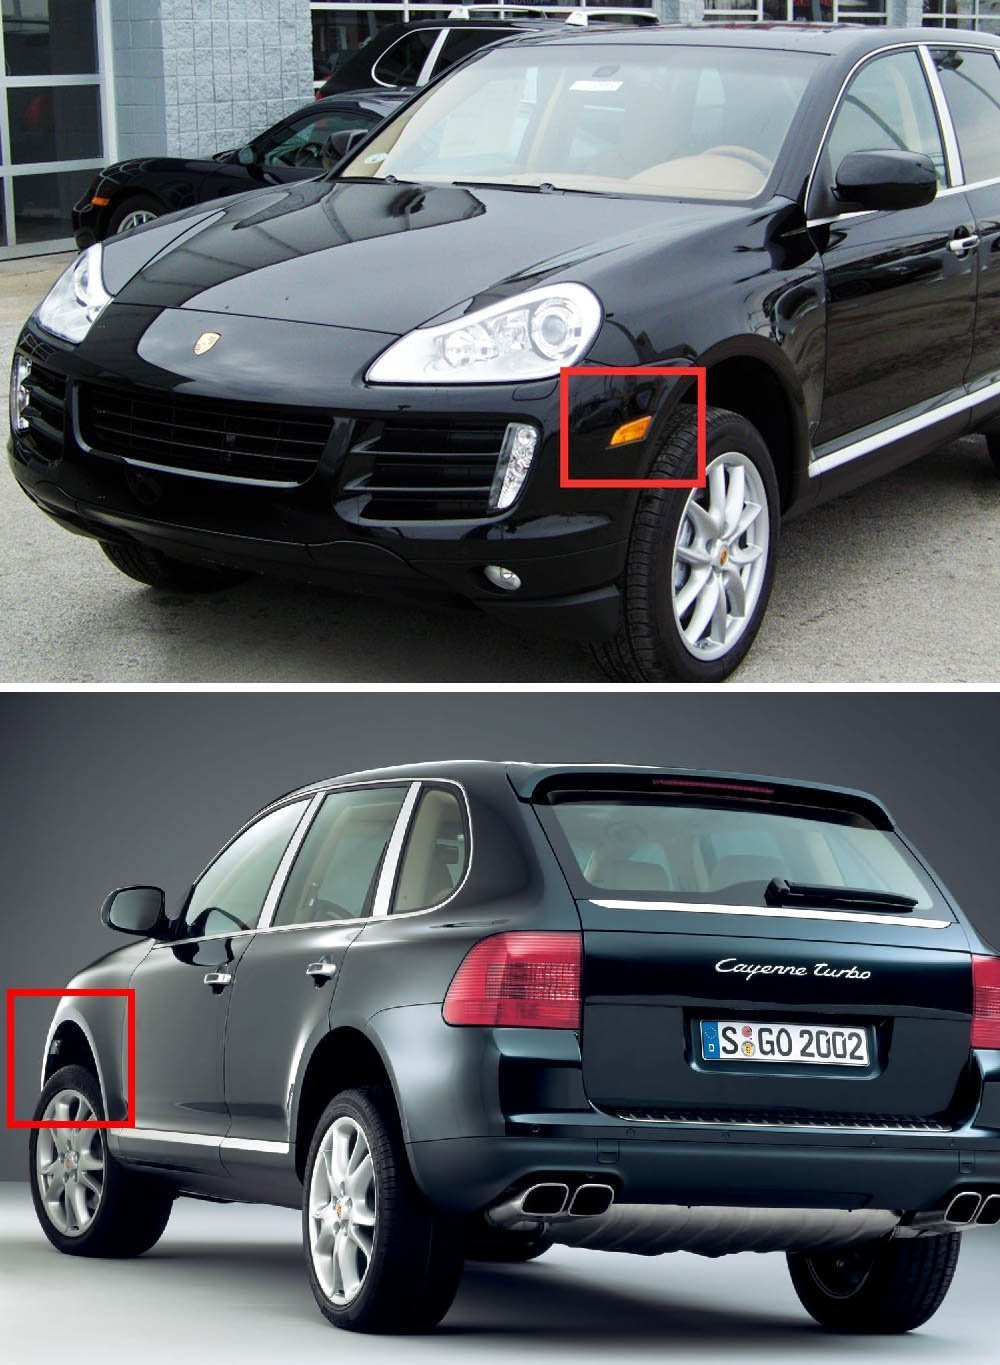 Amazon.com: Porsche Cayenne Led Daytime Running Light - NSLUMO E-Mark Approved Amber LED Side Marker+Turn Signal Lamp for 07-10 Porsche Cayenne 957 Led drl ...